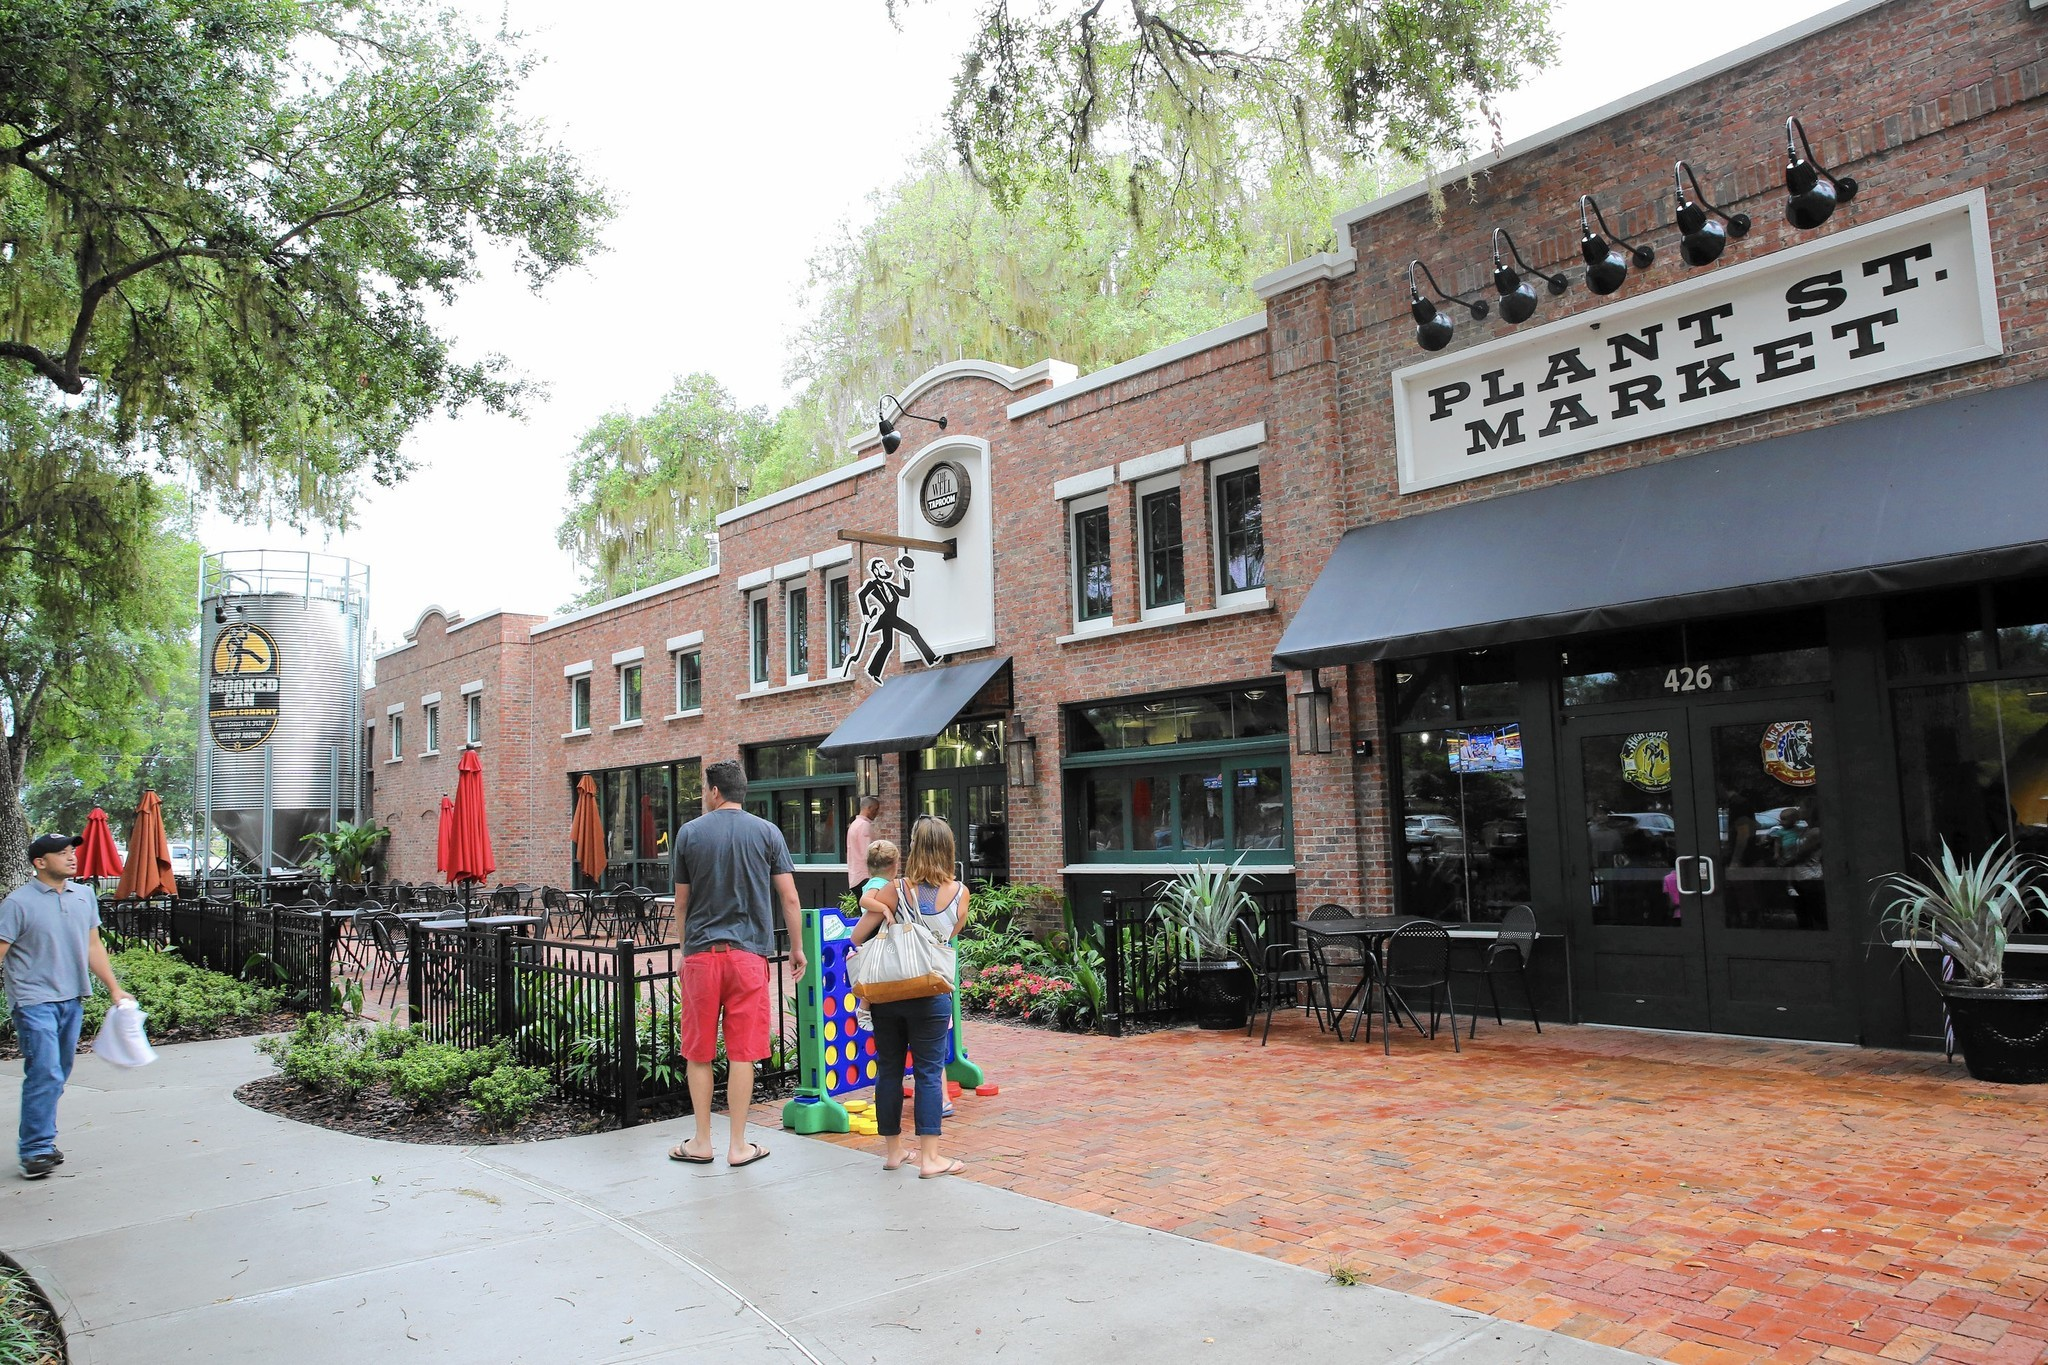 indoor markets bring national shopping trend to central florida